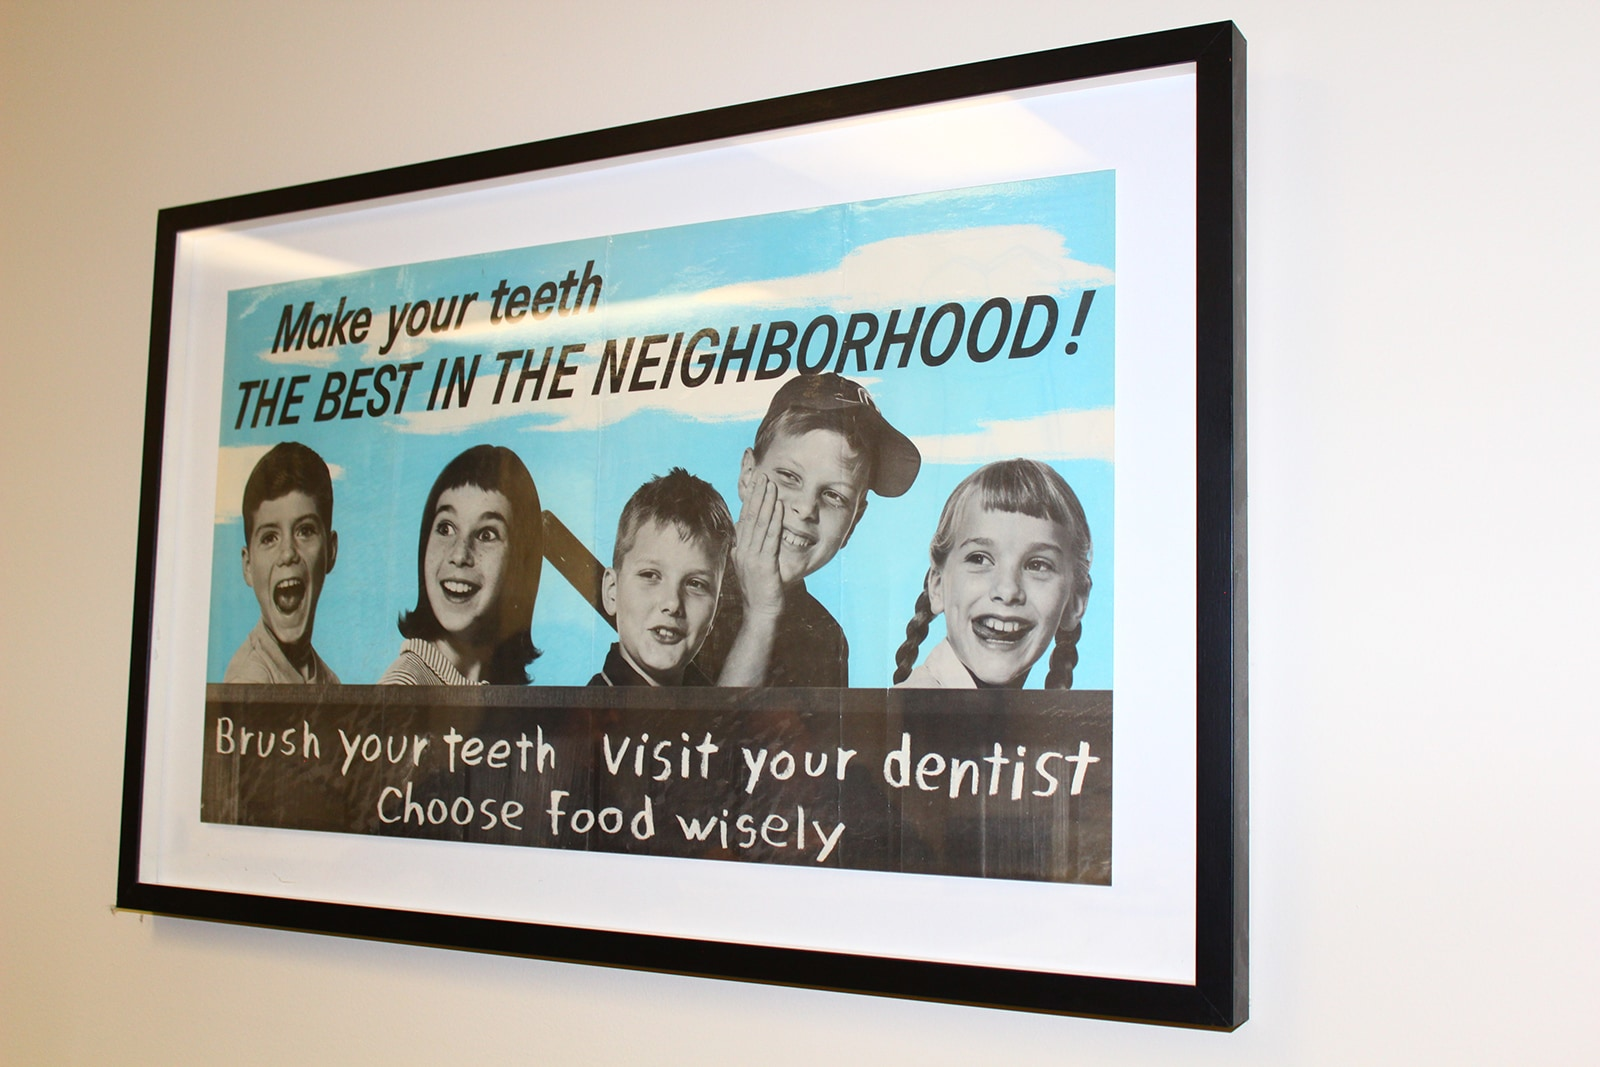 Picture of 5 kids that says make your teeth the best in the neighborhood! Brush your teeth, visit your dentist, choose food wisely hanging on a wall at Encino Cosmetic Dentistry.